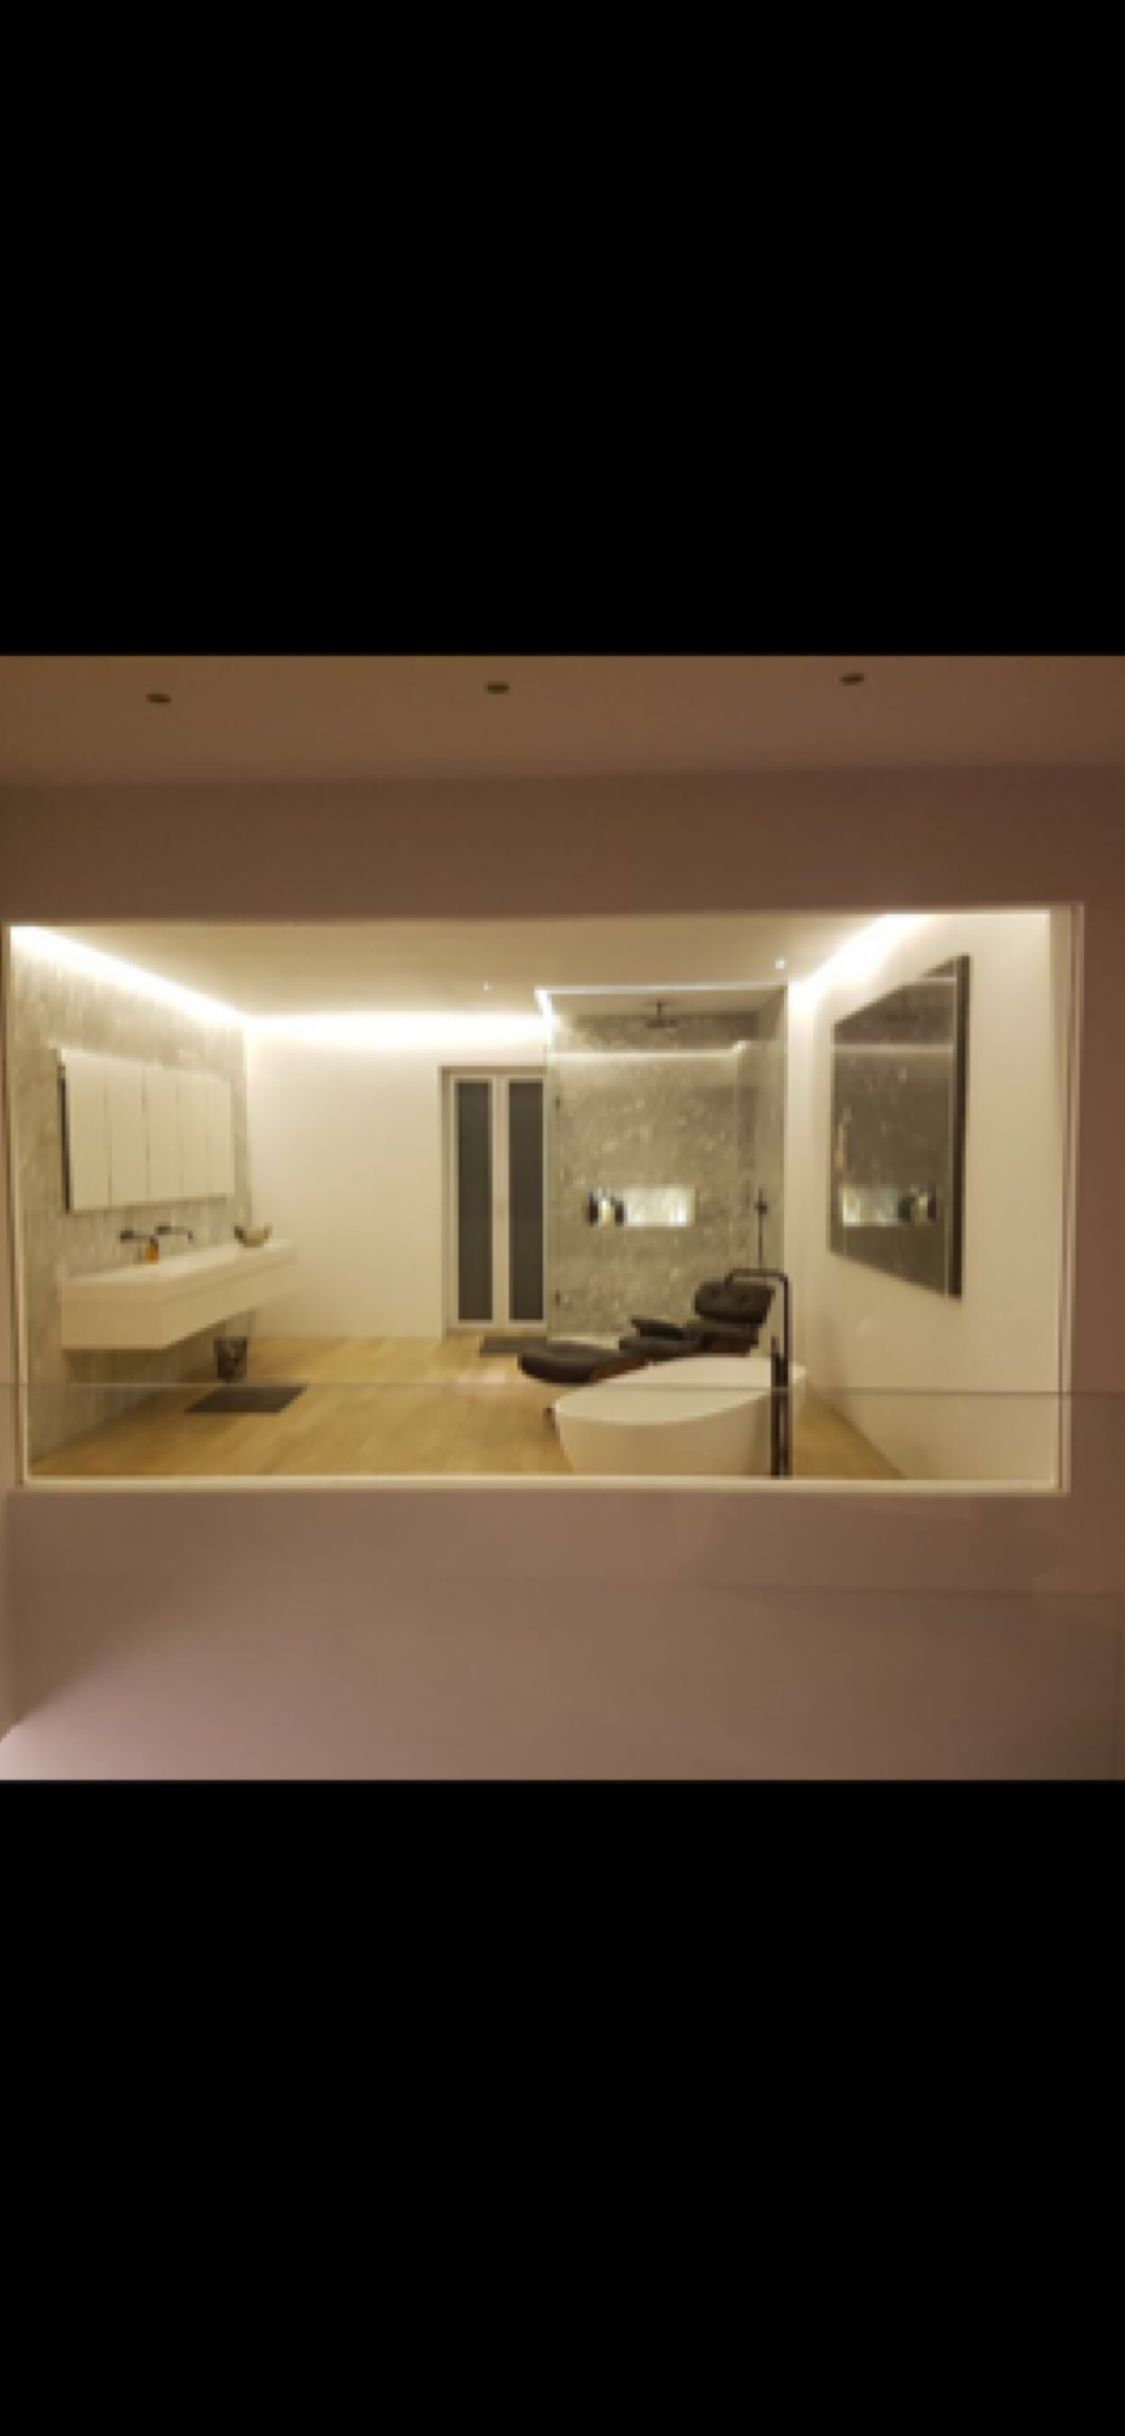 Bathroom interior design in bangladesh a bathroom with a view dhaka  penthouse dhaka  pinterest